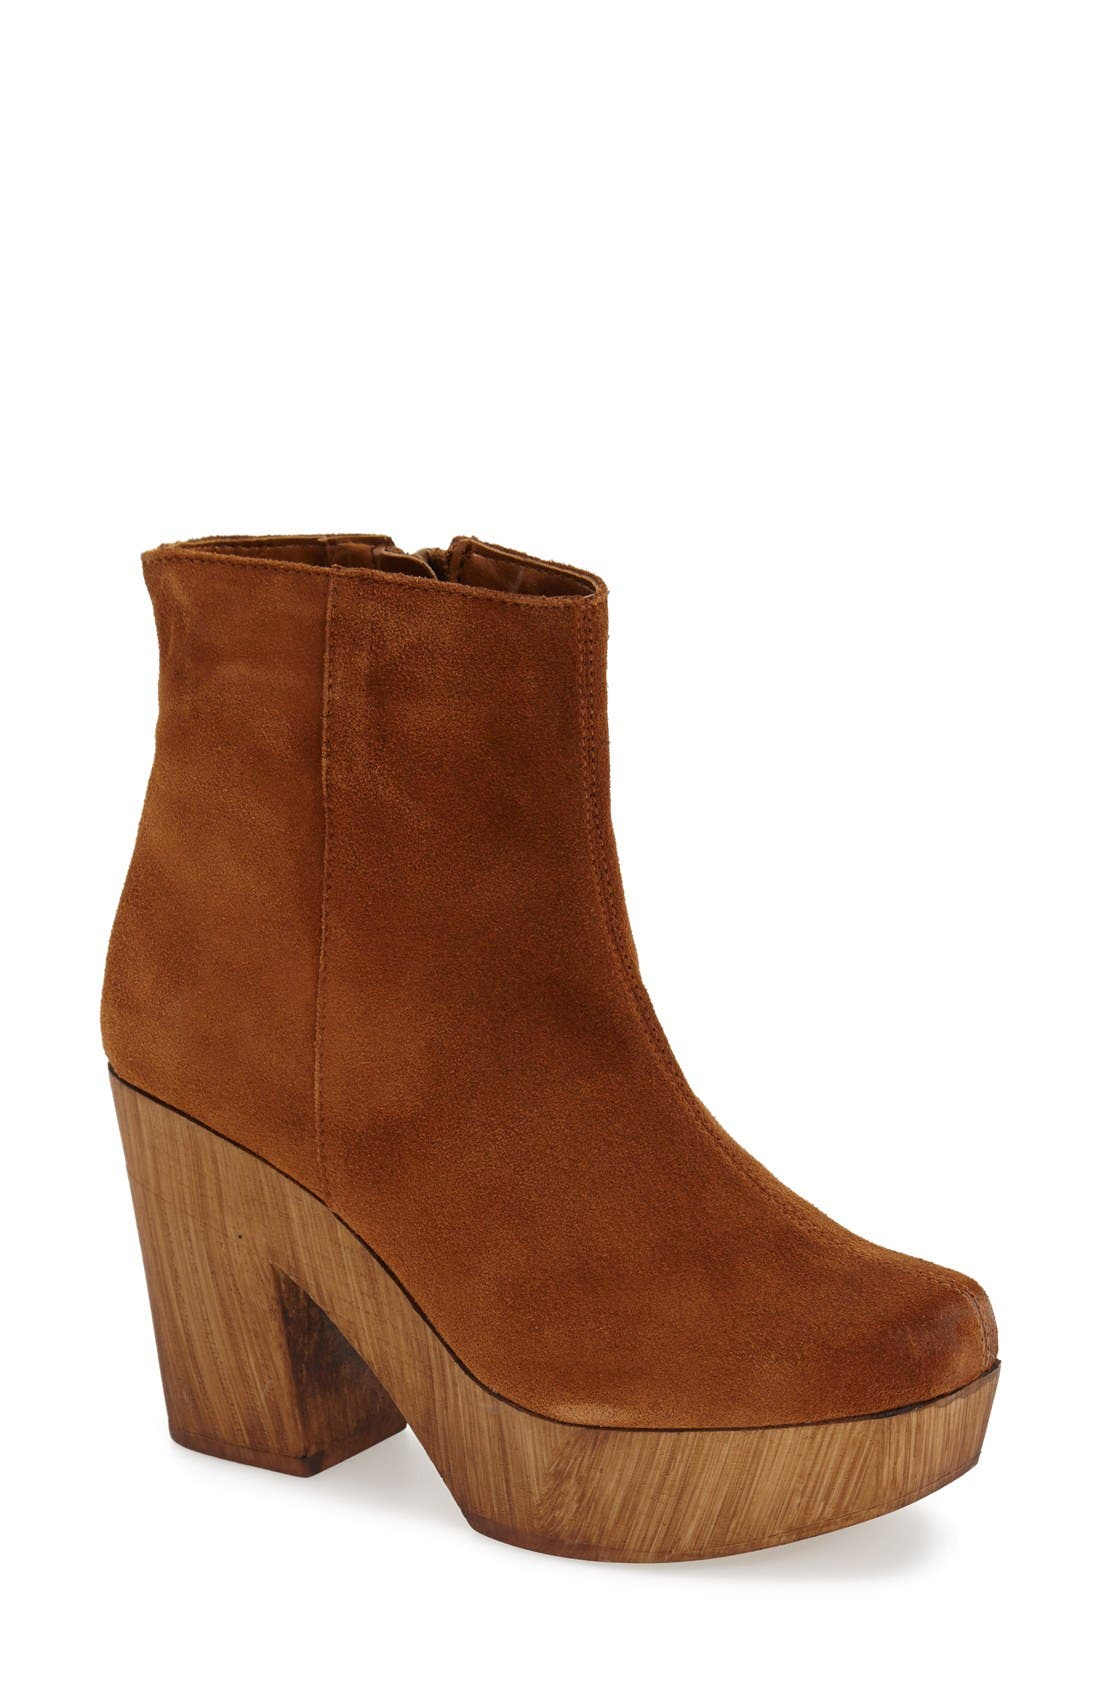 Alternate Image 1 Selected - Topshop 'Hitch' Platform Chelsea Boot (Women)